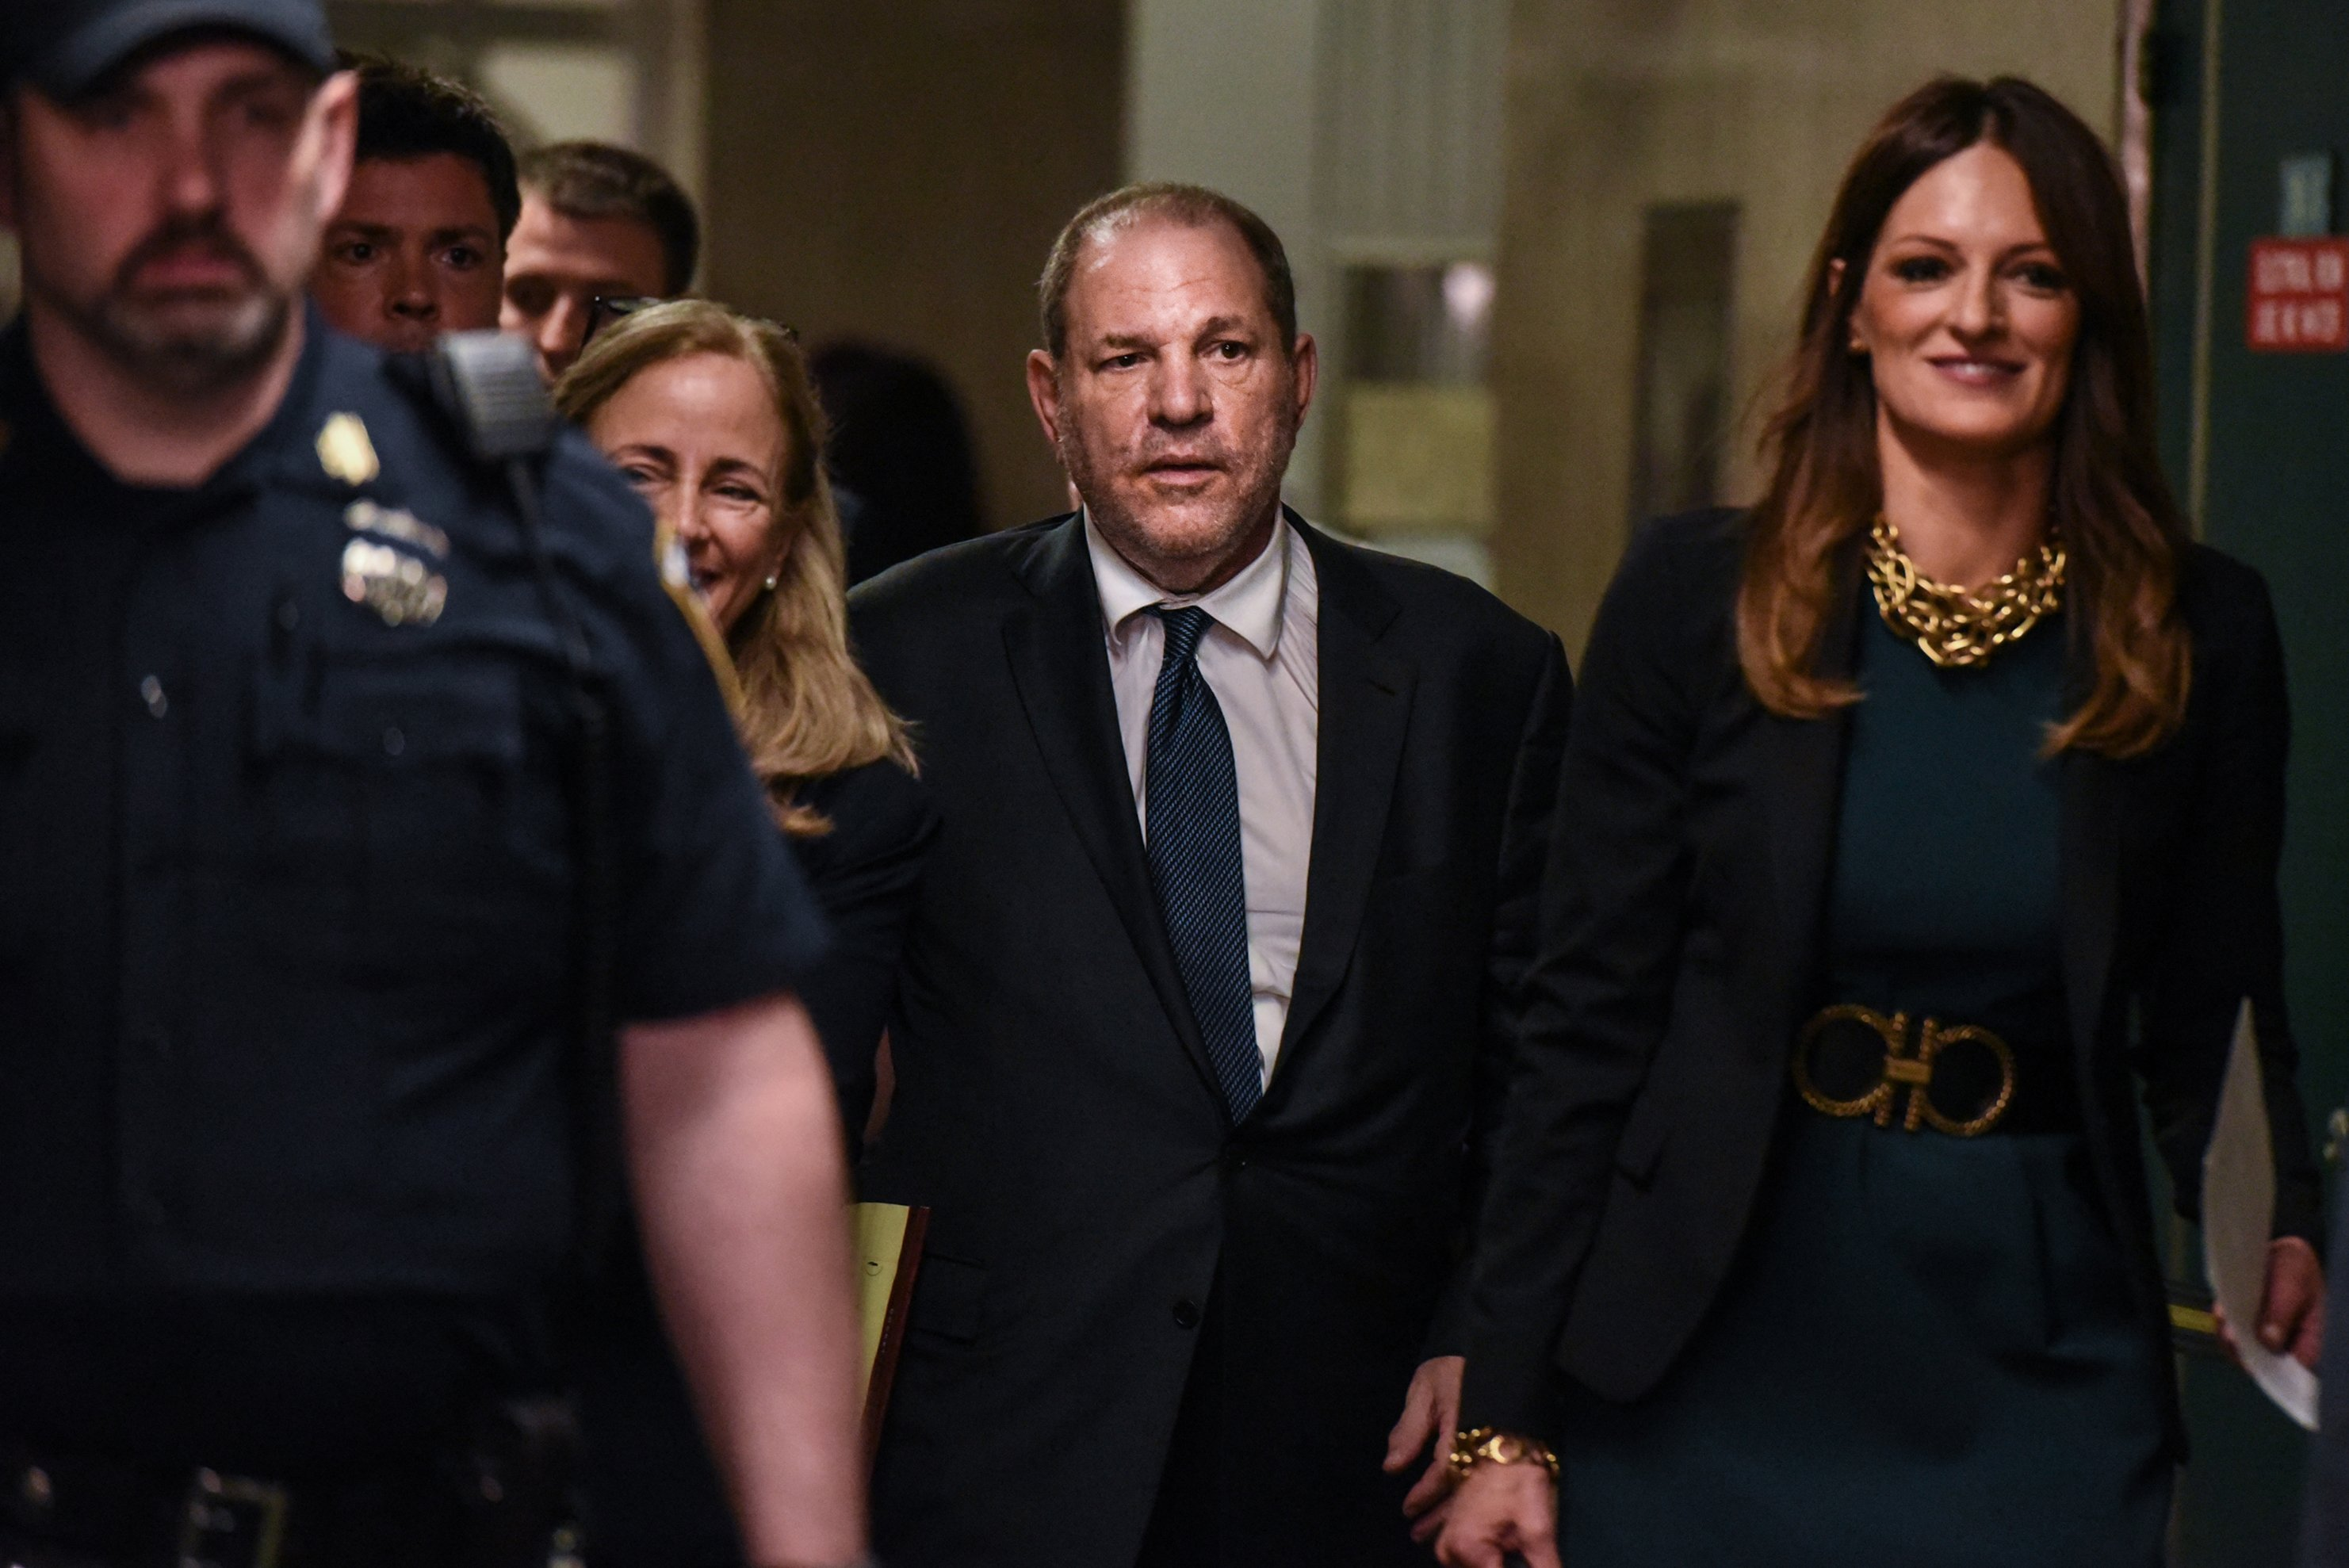 Actress who alleges she was raped by Harvey Weinstein meets with prosecutors